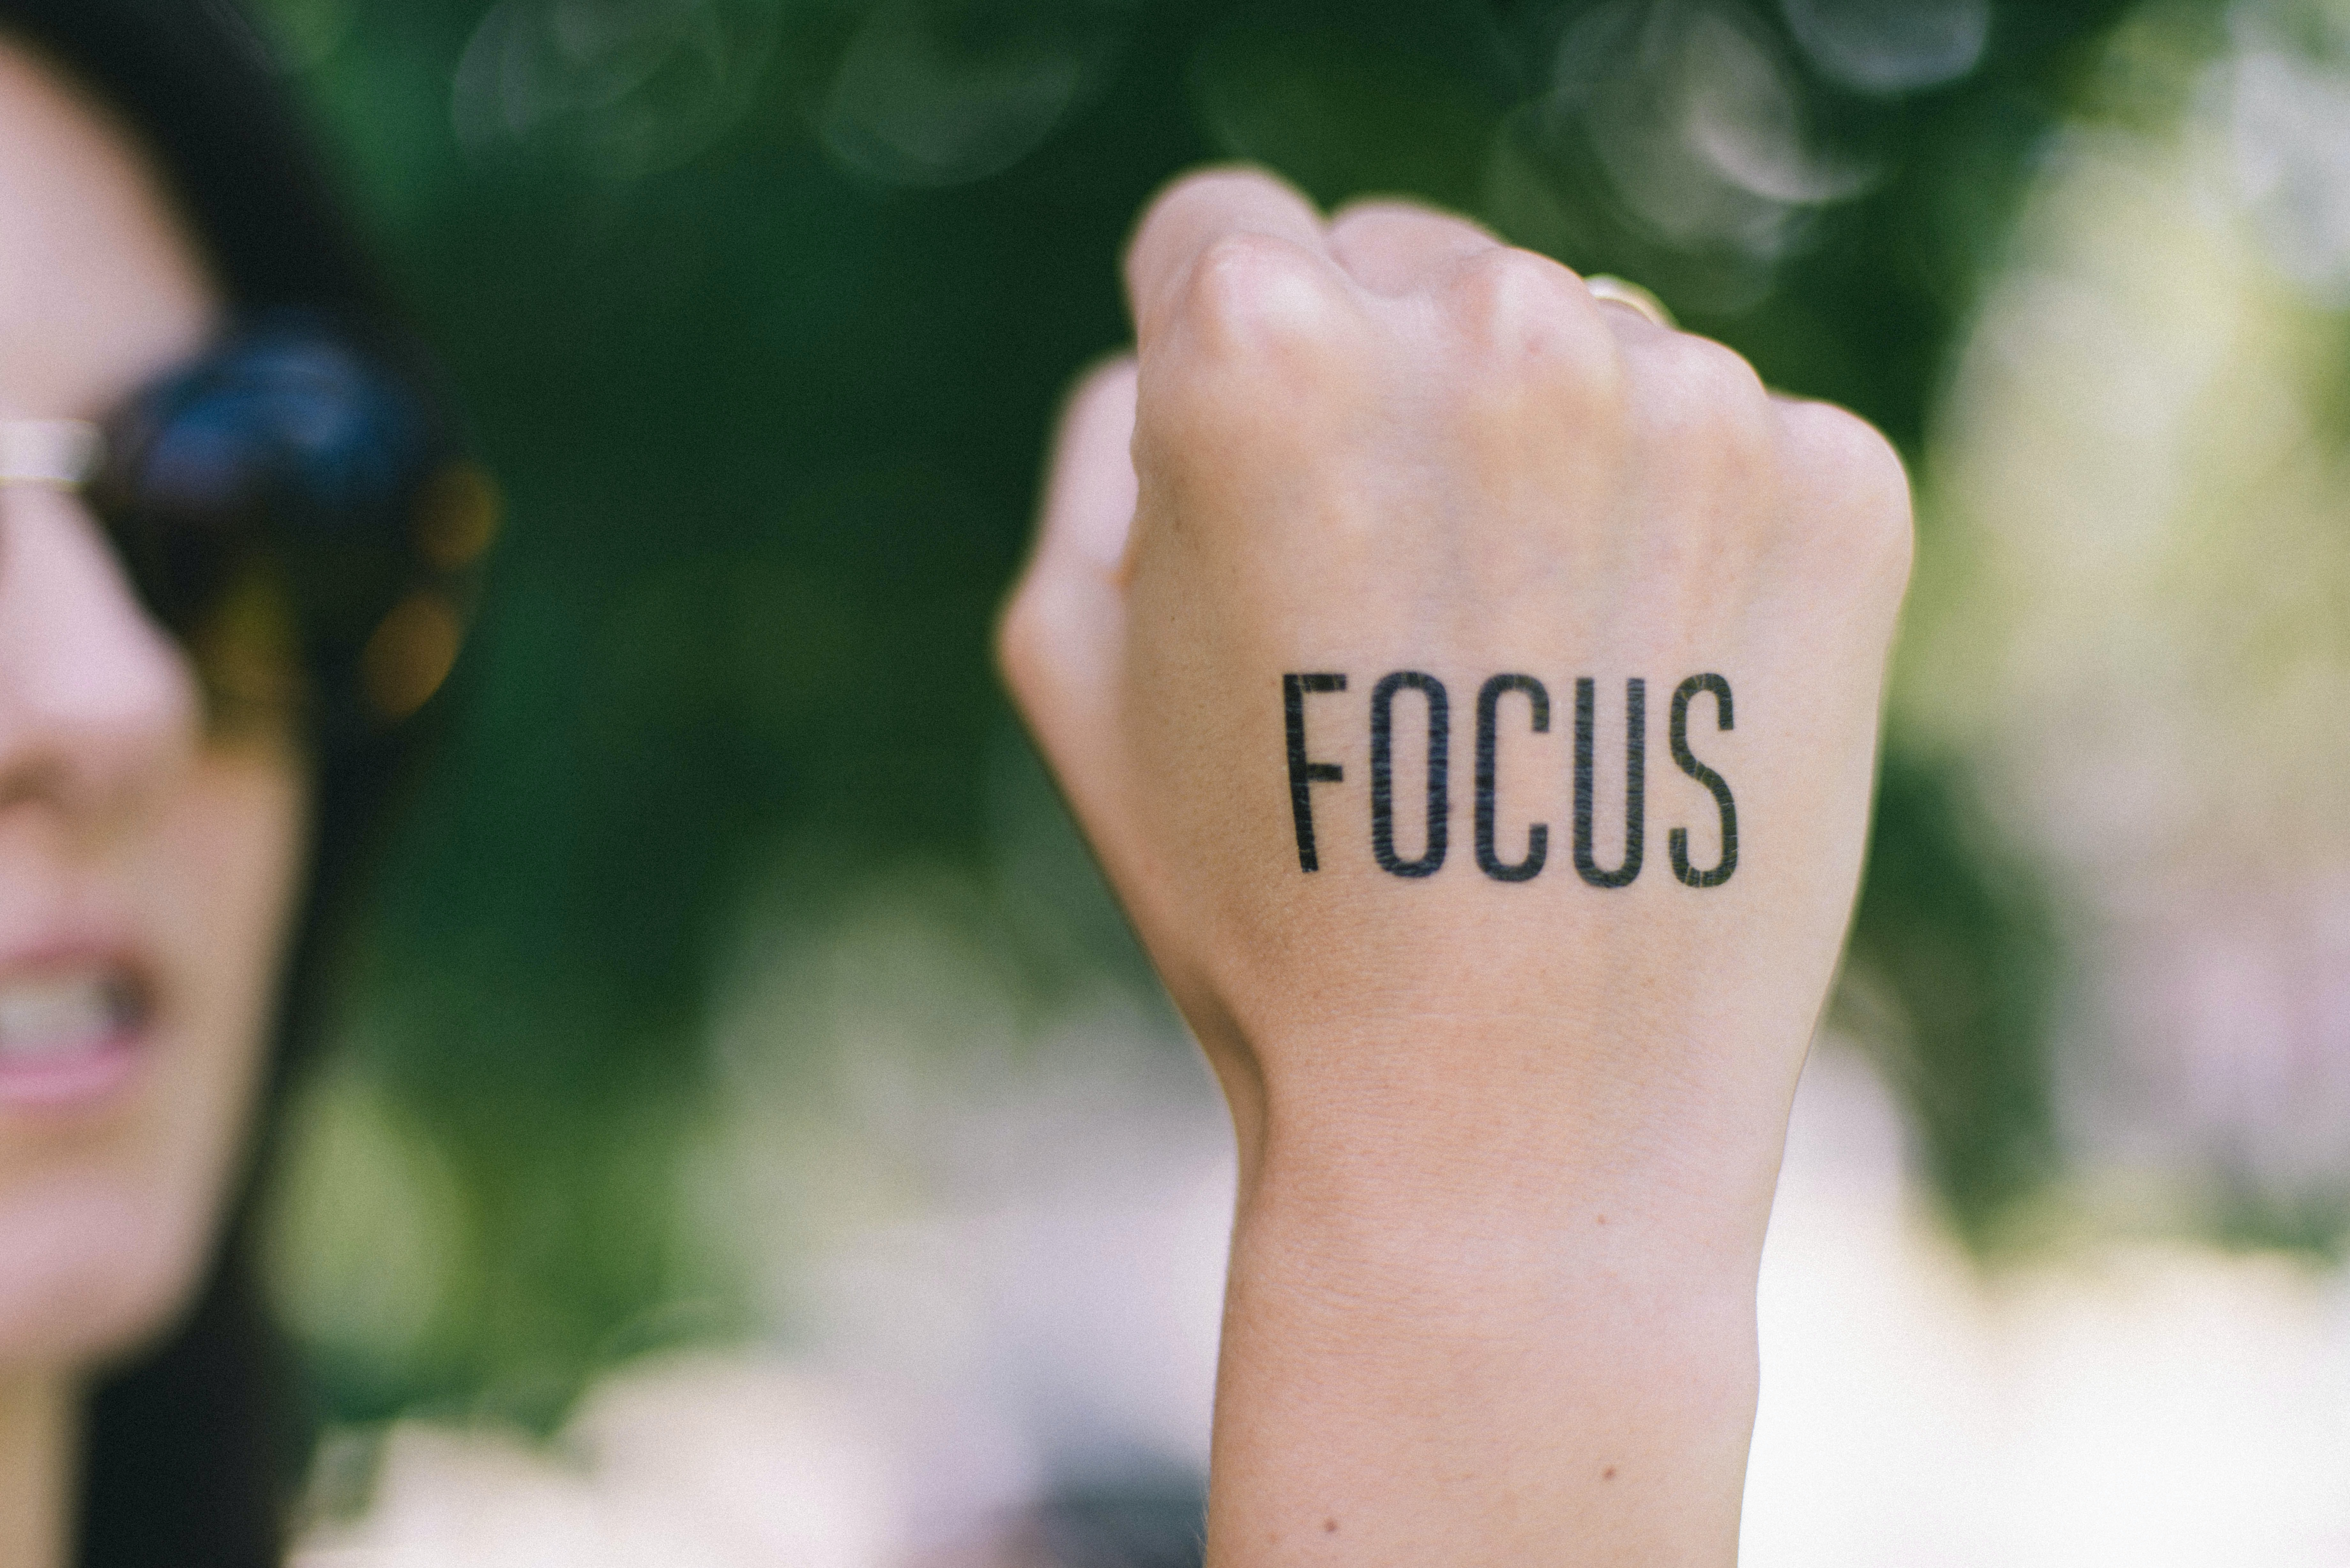 focus-on-being-useful